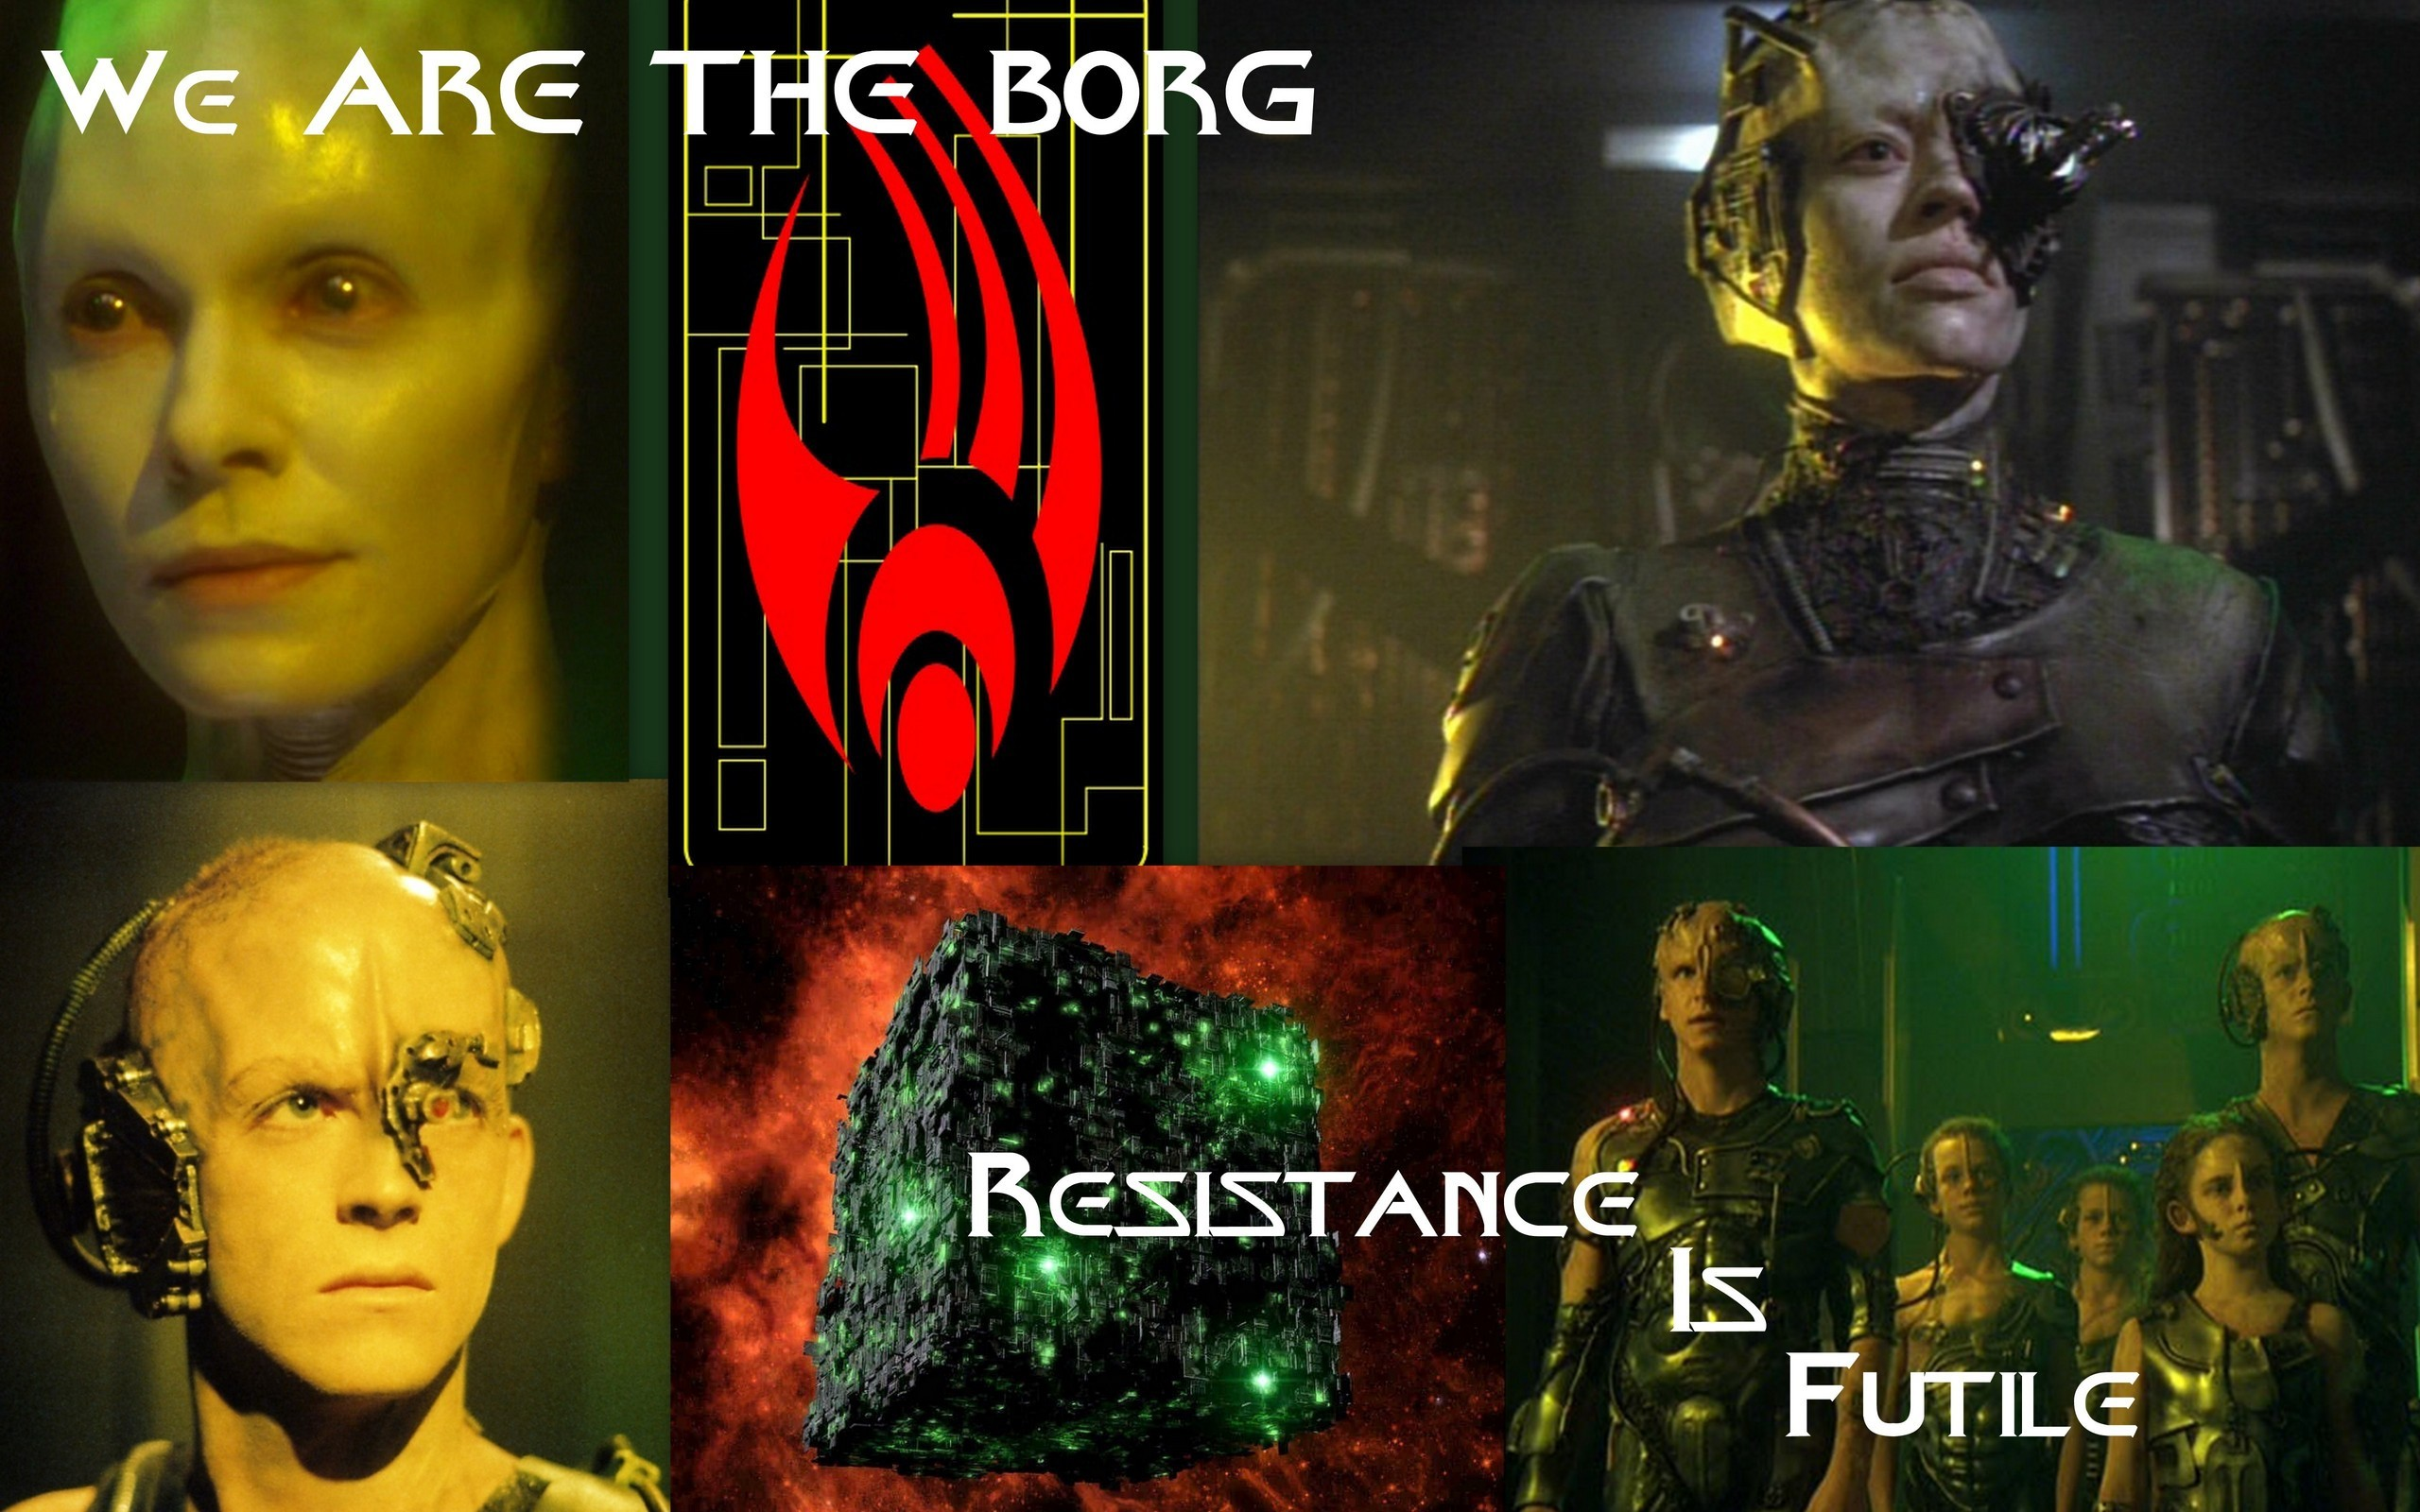 2560x1600 Star Trek Voyager images We are the Borg-Voyager themed HD wallpaper and  background photos